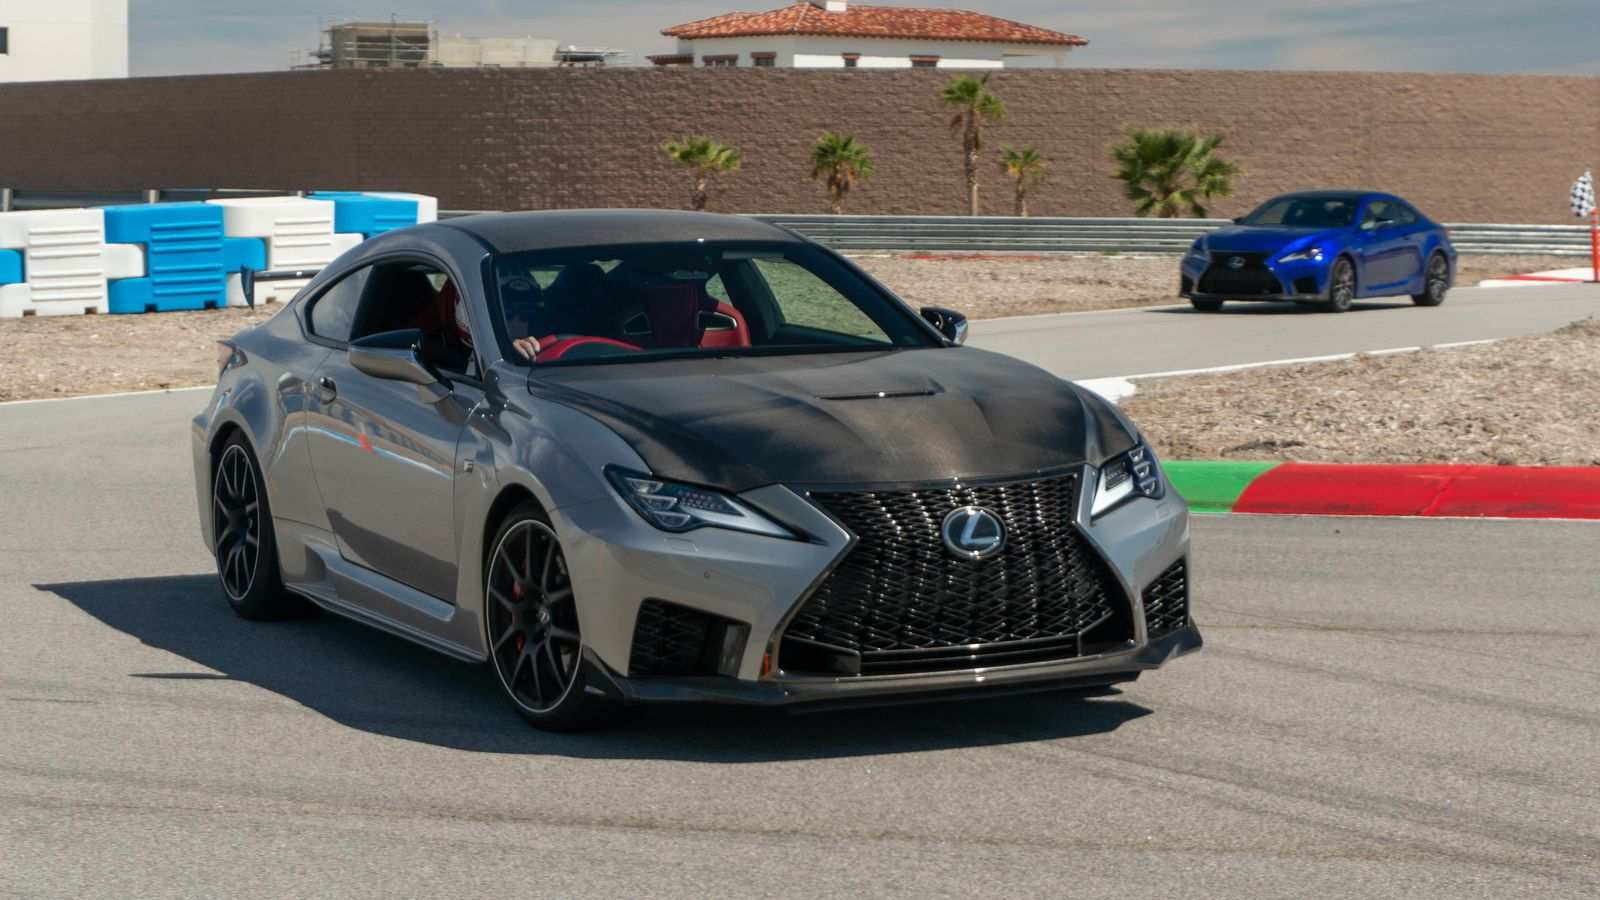 31 Gallery of Lexus Rcf 2020 New Concept with Lexus Rcf 2020